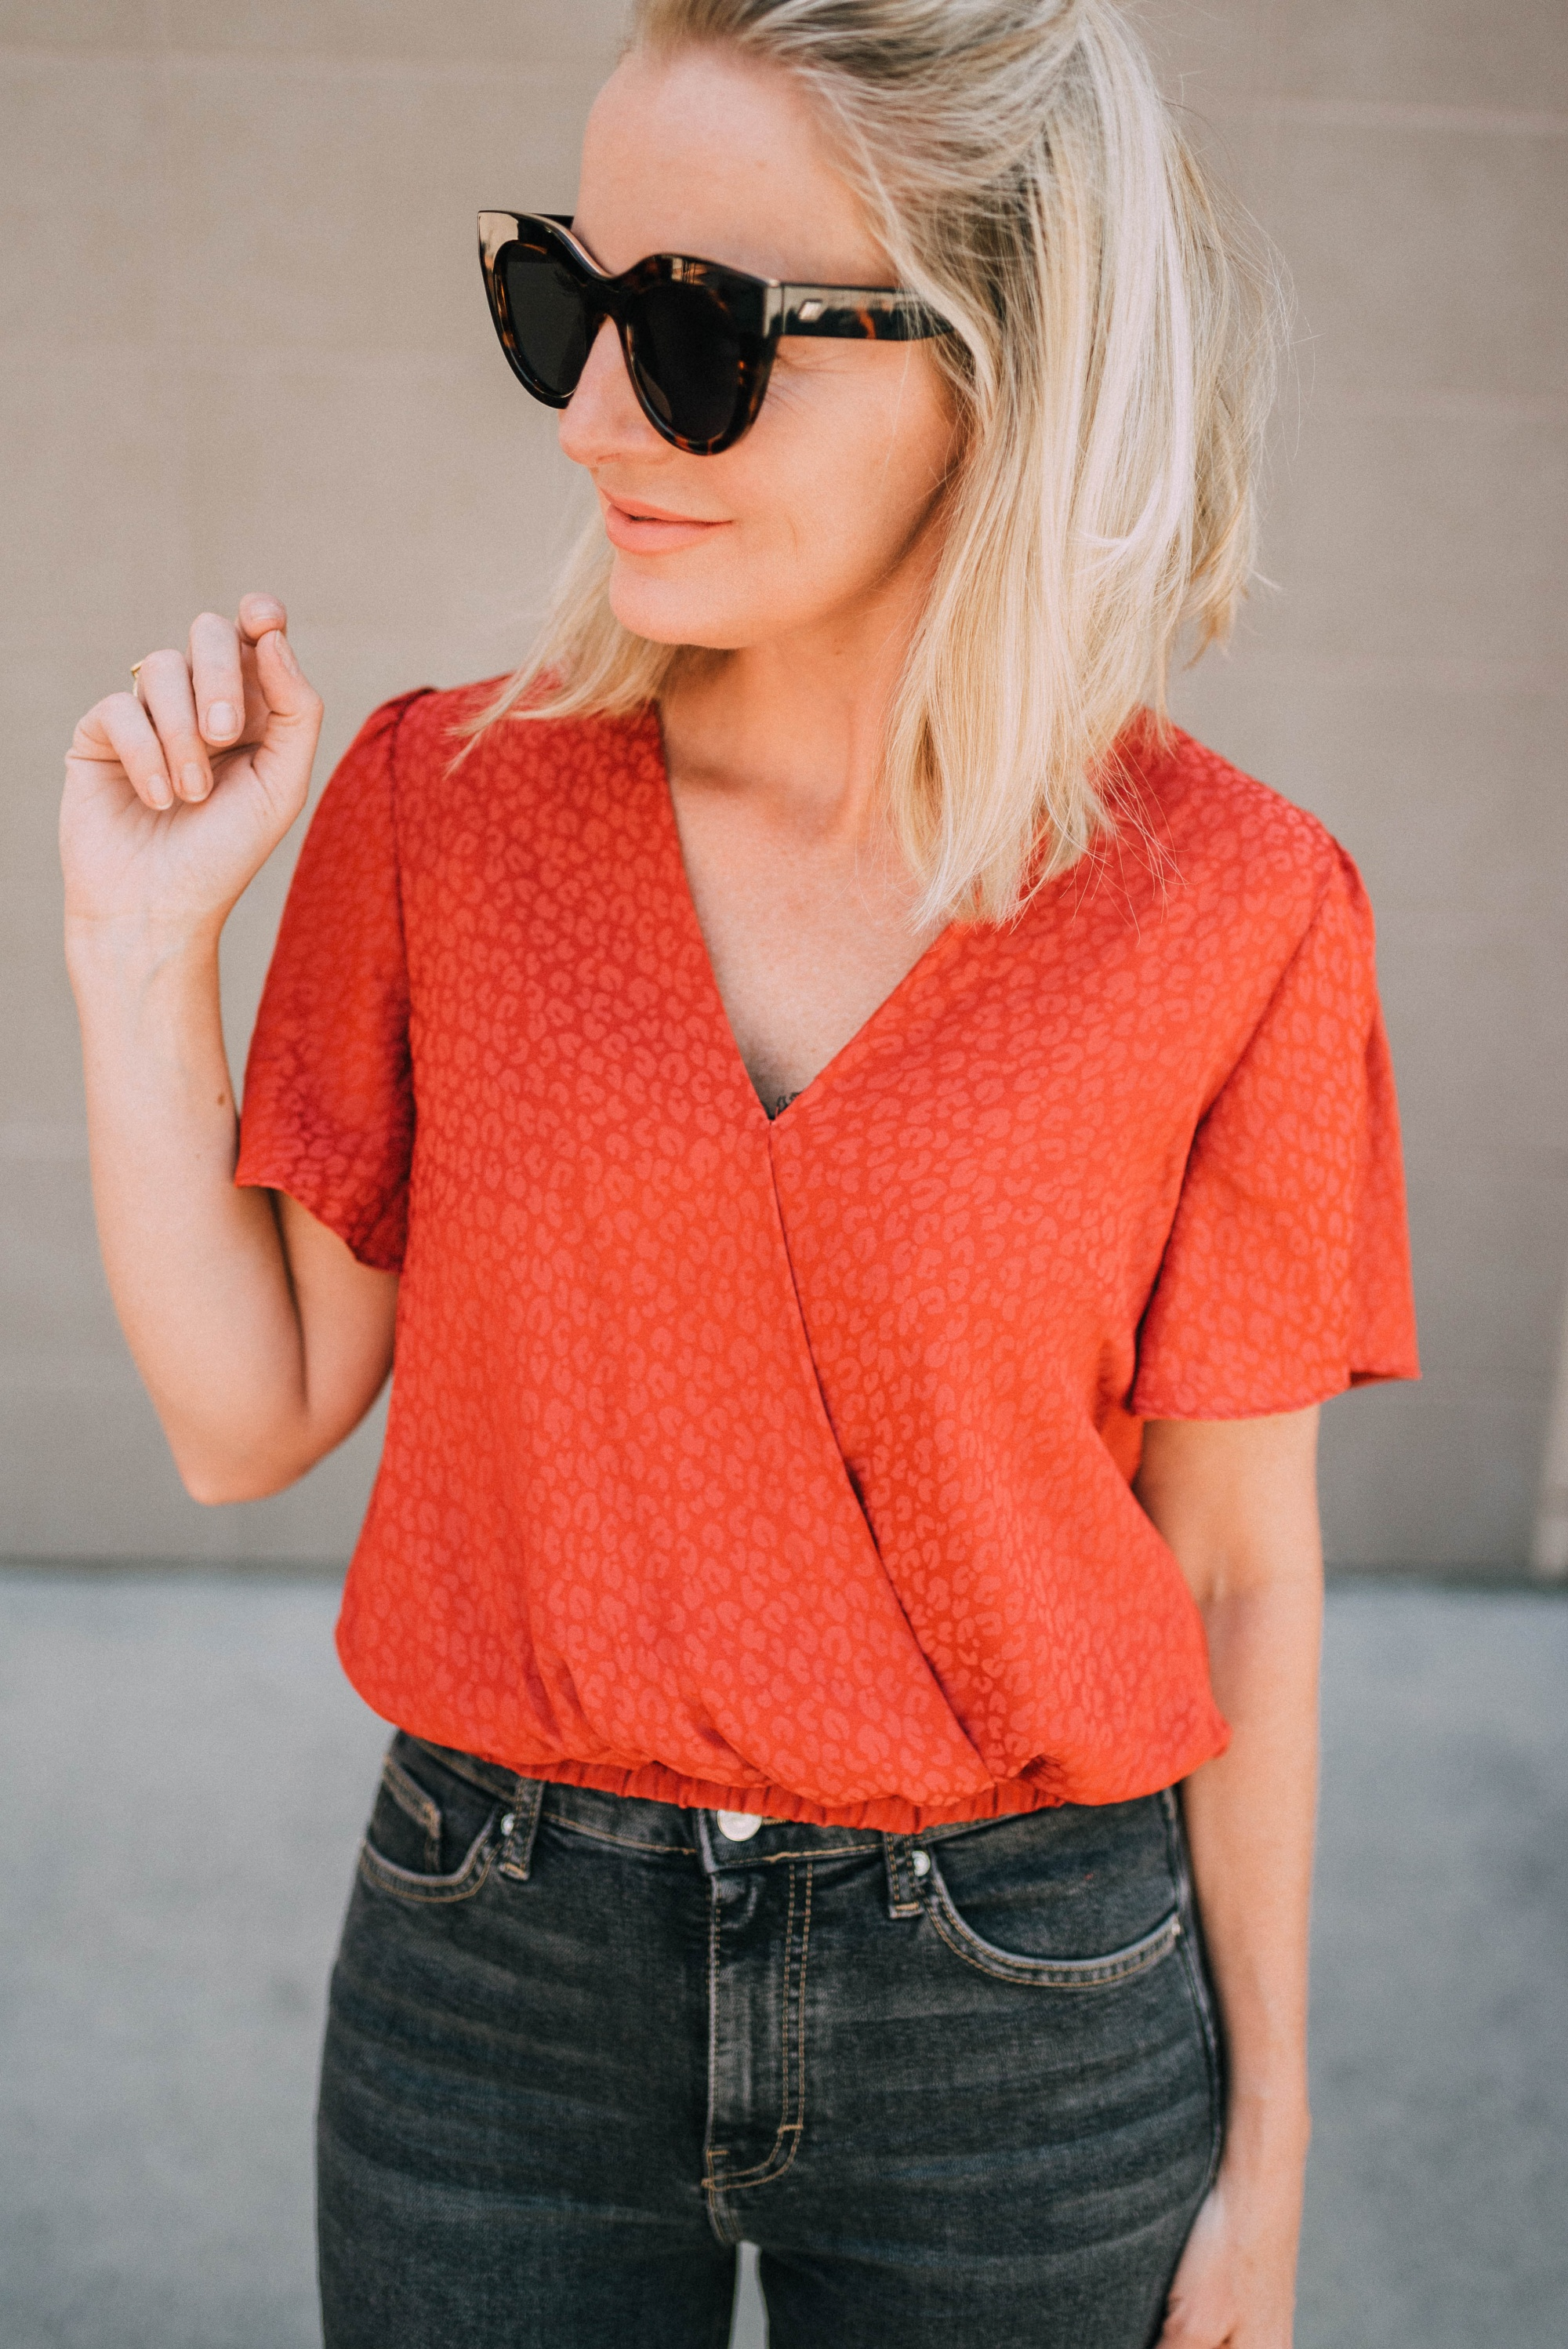 Red, Fashion blogger Erin Busbee of BusbeeStyle.com wearing a red ASTR The Label jacquard top from The Nordstrom Anniversary Sale 2019